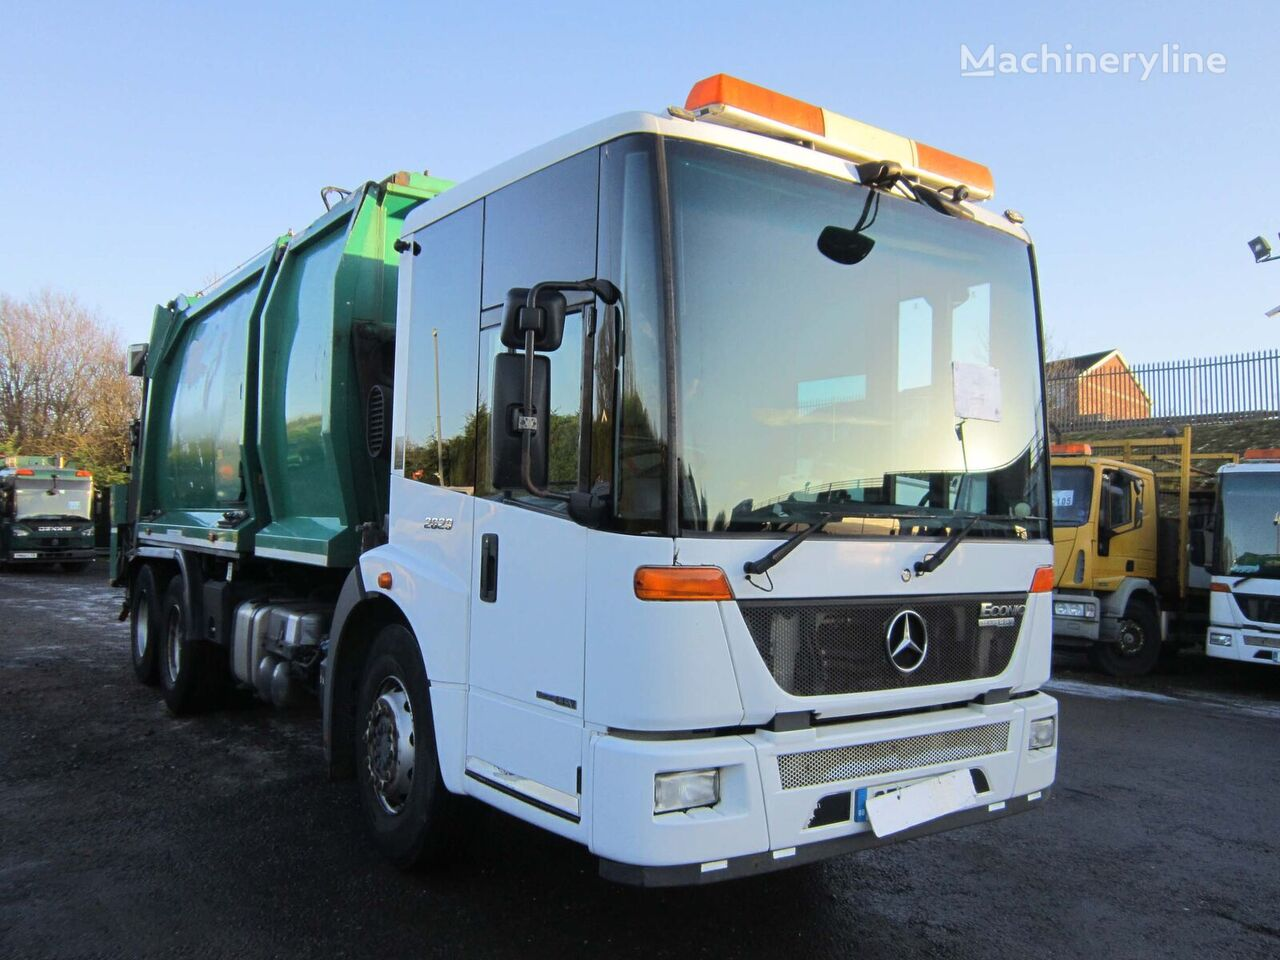 MERCEDES-BENZ ECONIC 2629 BLUETEC EEV 6X4 26TON AUTO REFUSE RECYCLER C/W BIN L garbage truck